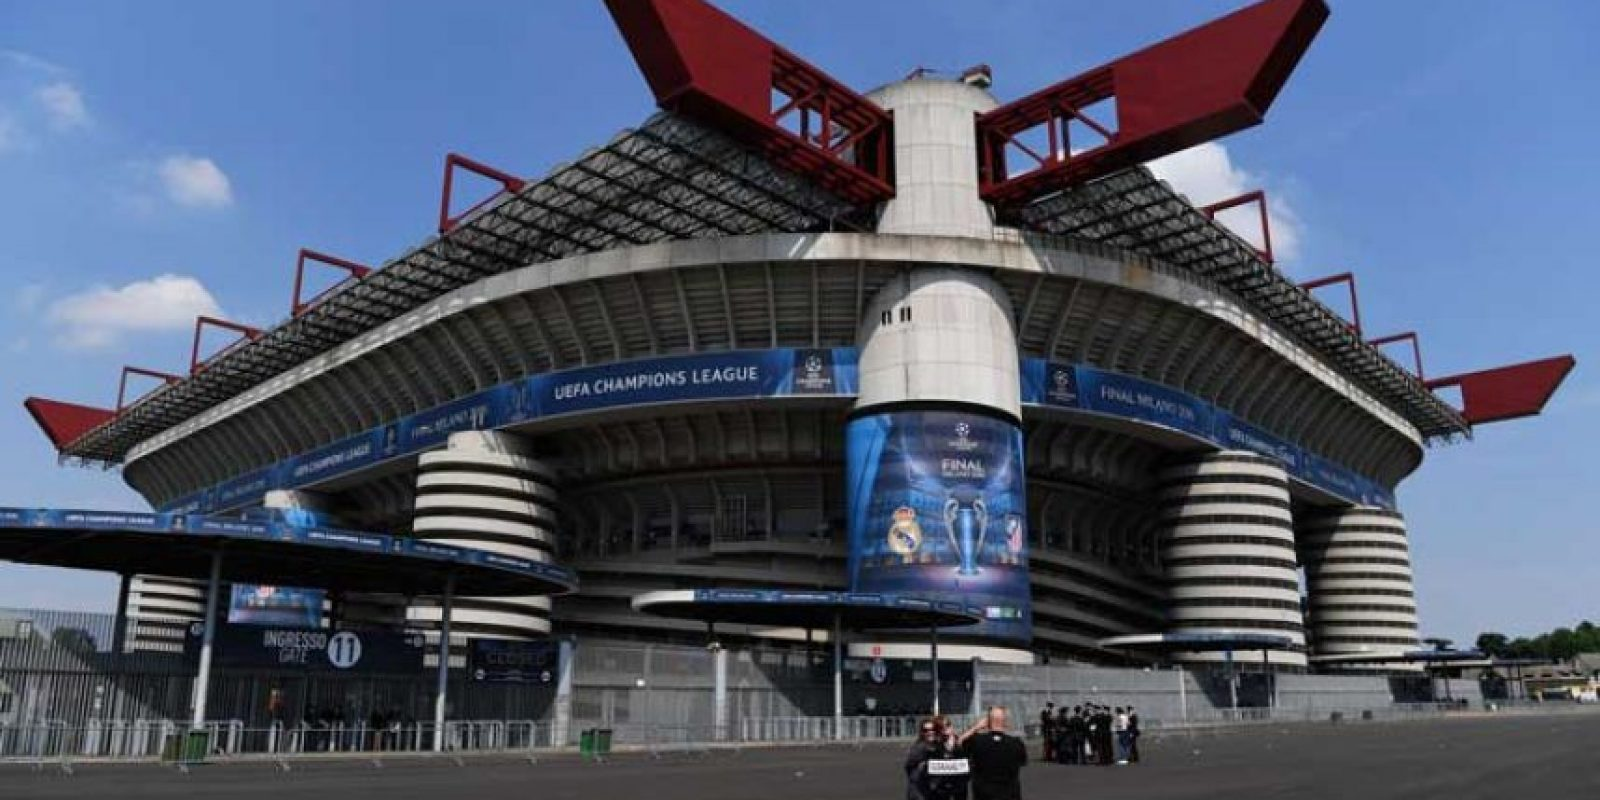 El Estadio San Siro está listo para la final de la Champions League. Foto: Getty Images